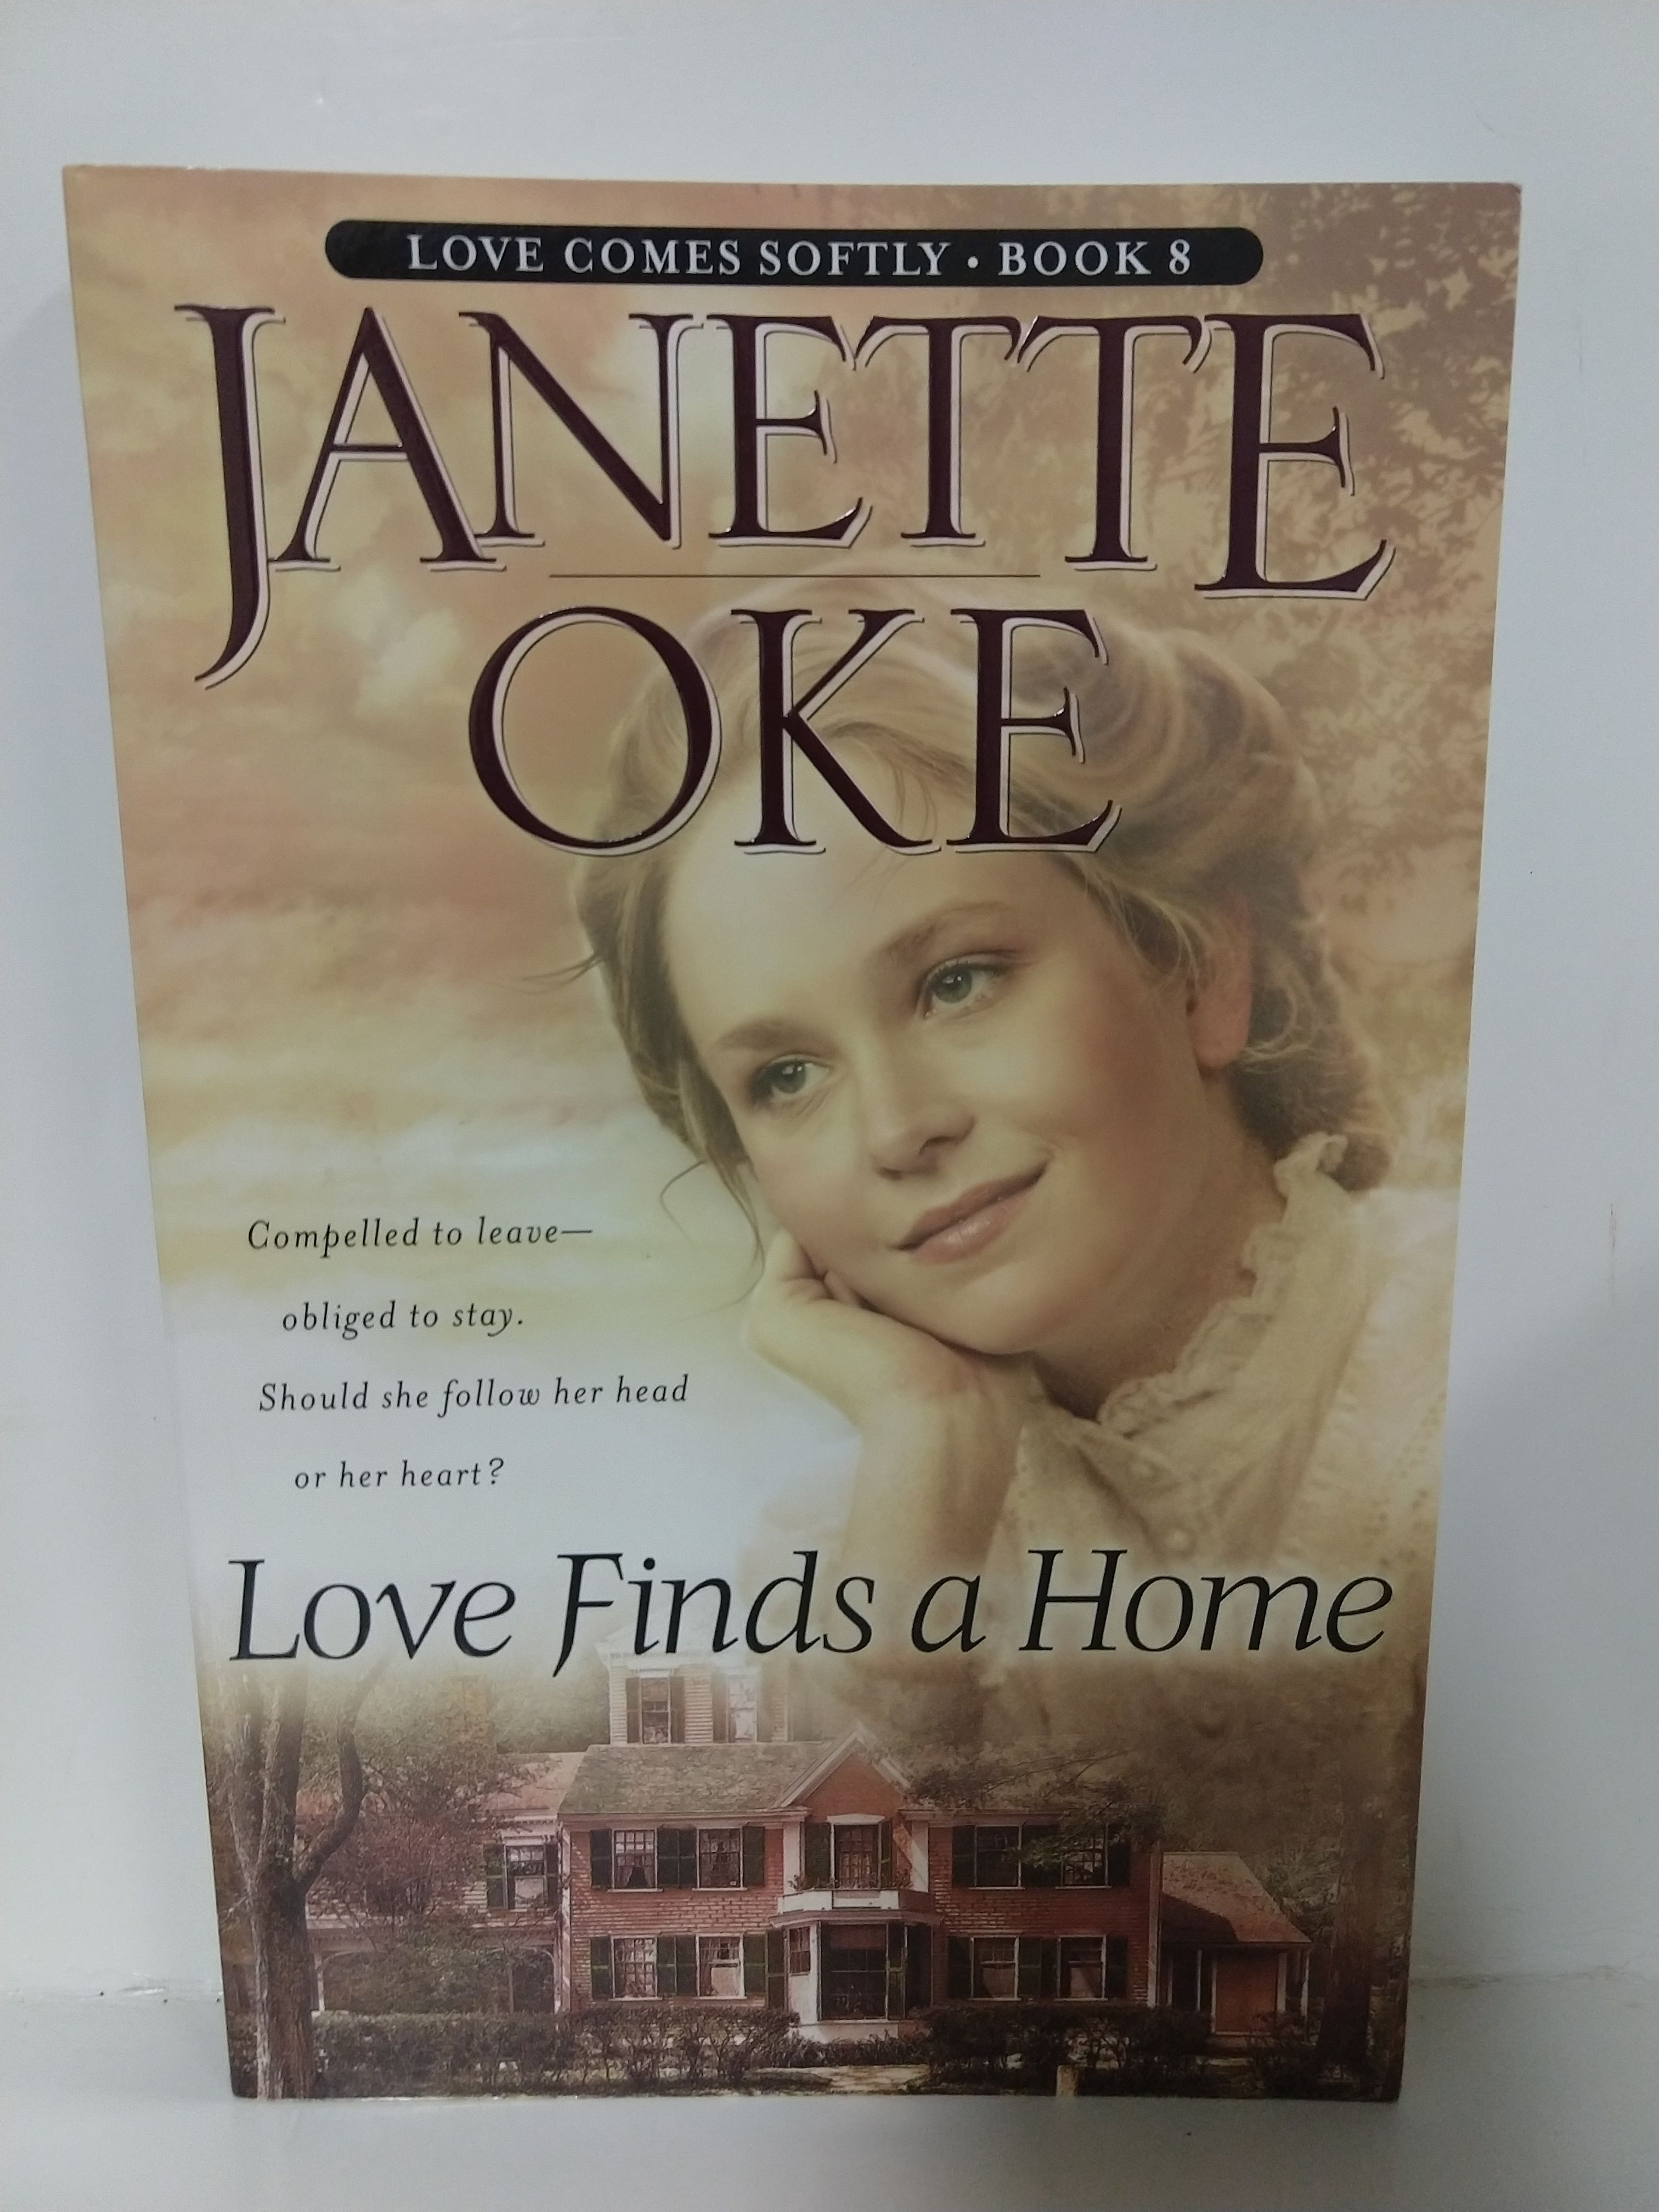 Read More From Janette Oke